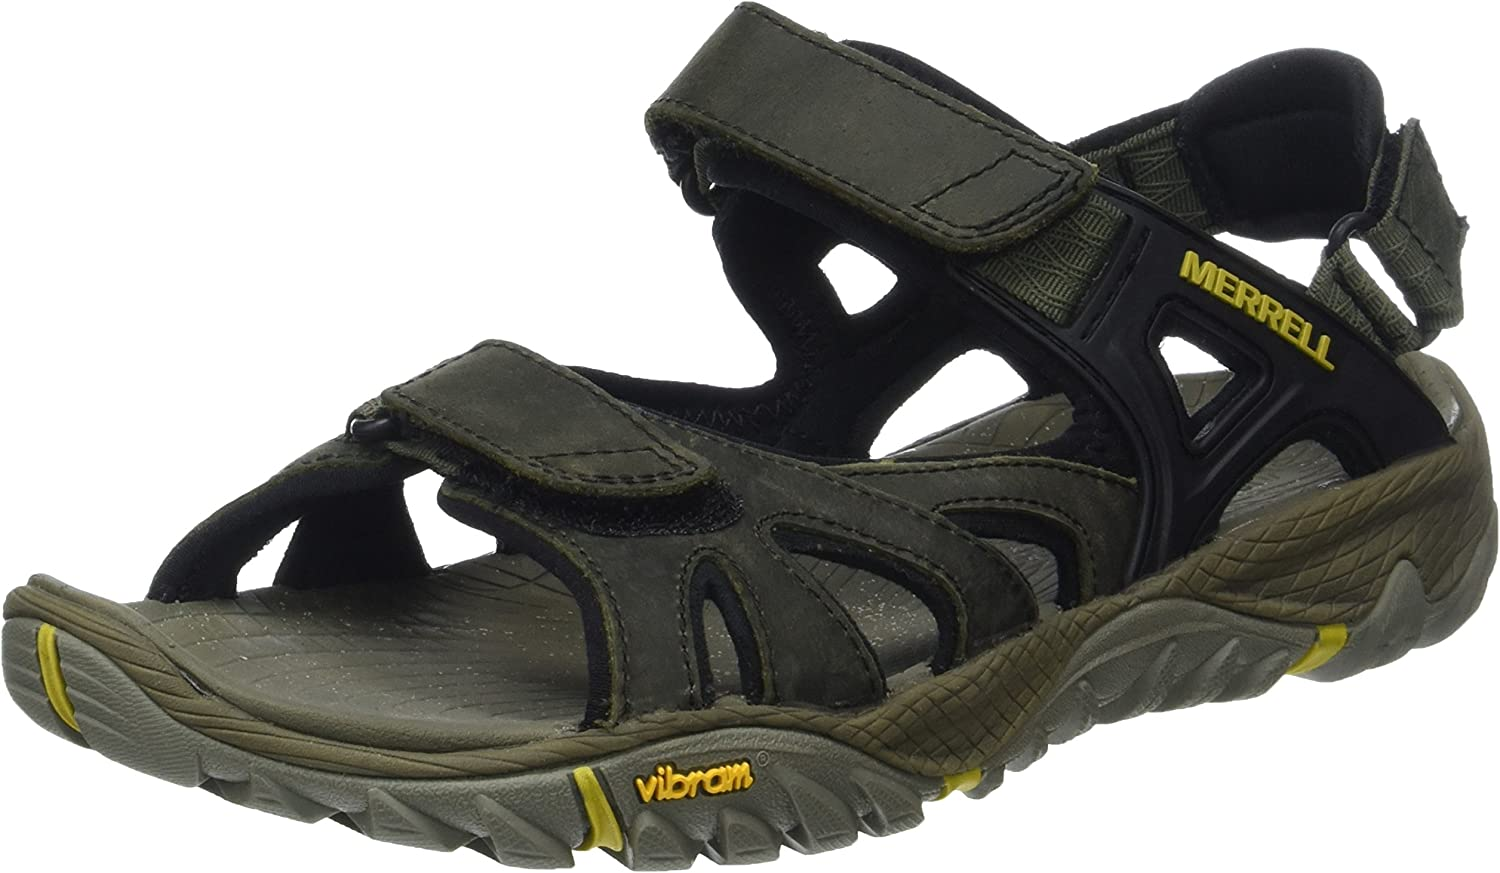 Merrell Mens All Out Blaze Sieve Congreen Athletic Sandals